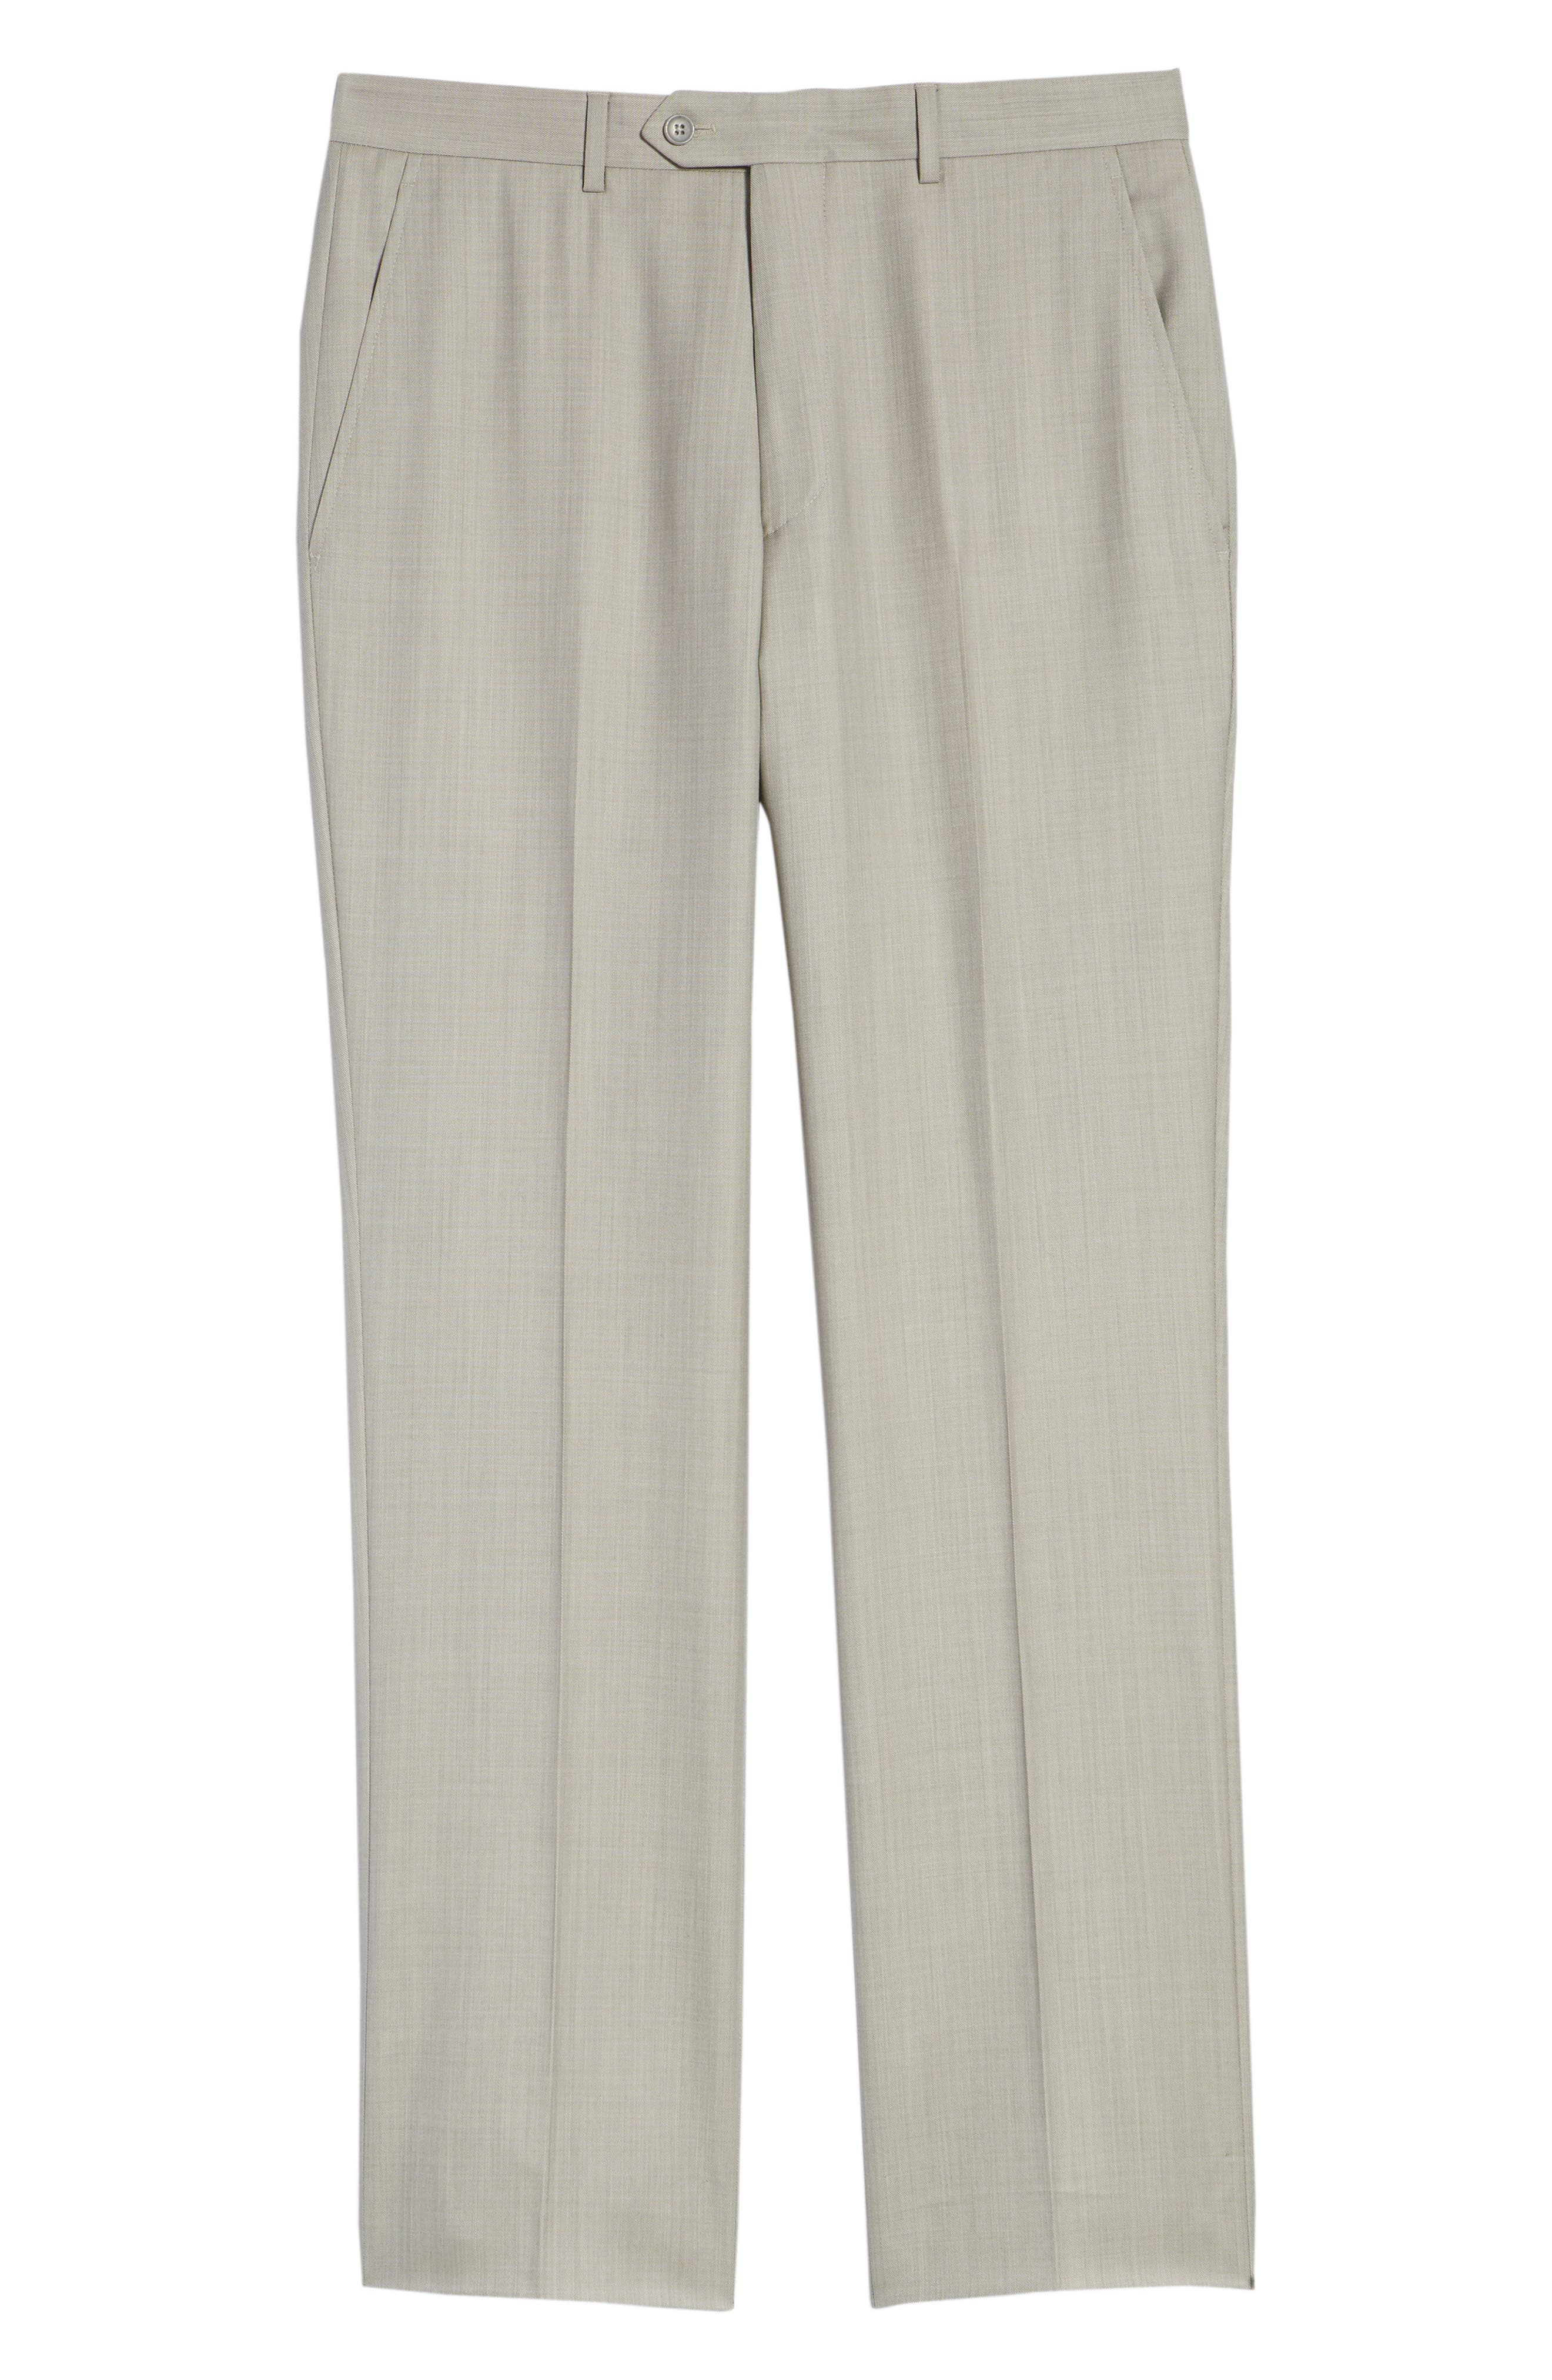 Flat Front Sharkskin Wool Trousers,                             Alternate thumbnail 6, color,                             SAND